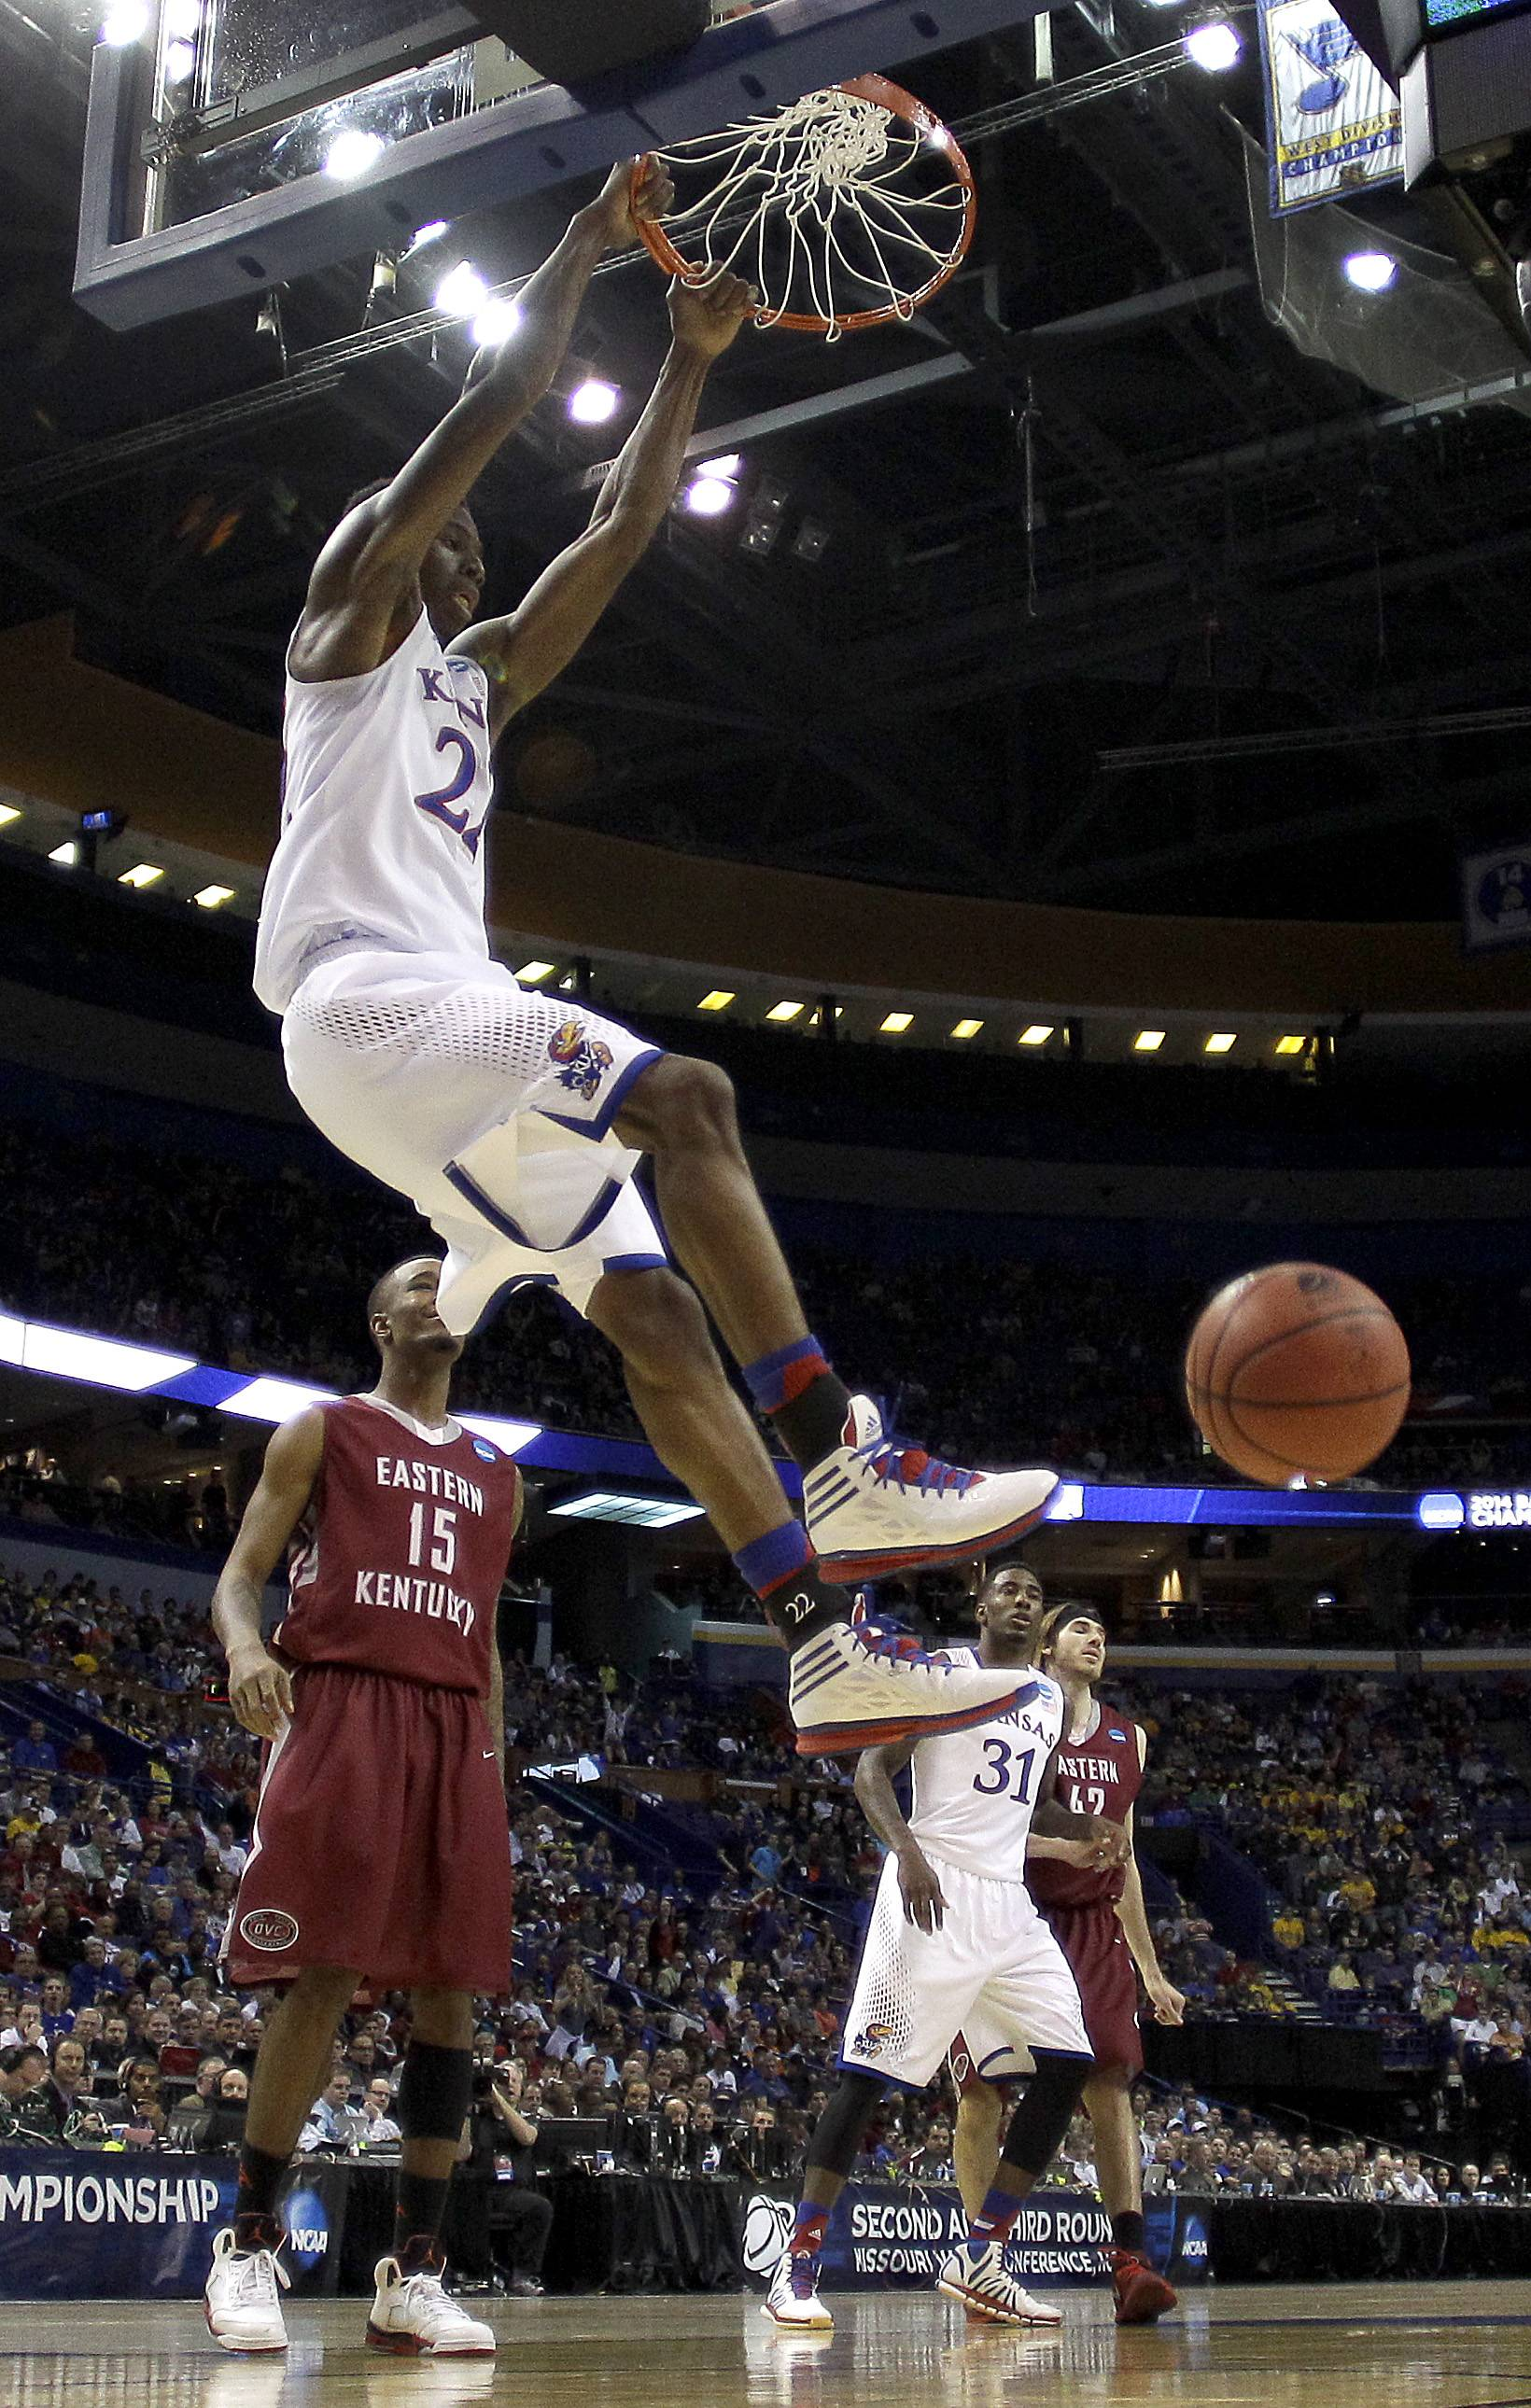 Kansas' Andrew Wiggins gets past Eastern Kentucky's Orlando Williams (15) to dunk the ball during the first half of a second-round game in the NCAA college basketball tournament, Friday, March 21, 2014, in St. Louis. Kansas won the game 80-69. (AP Photo/Charlie Riedel)